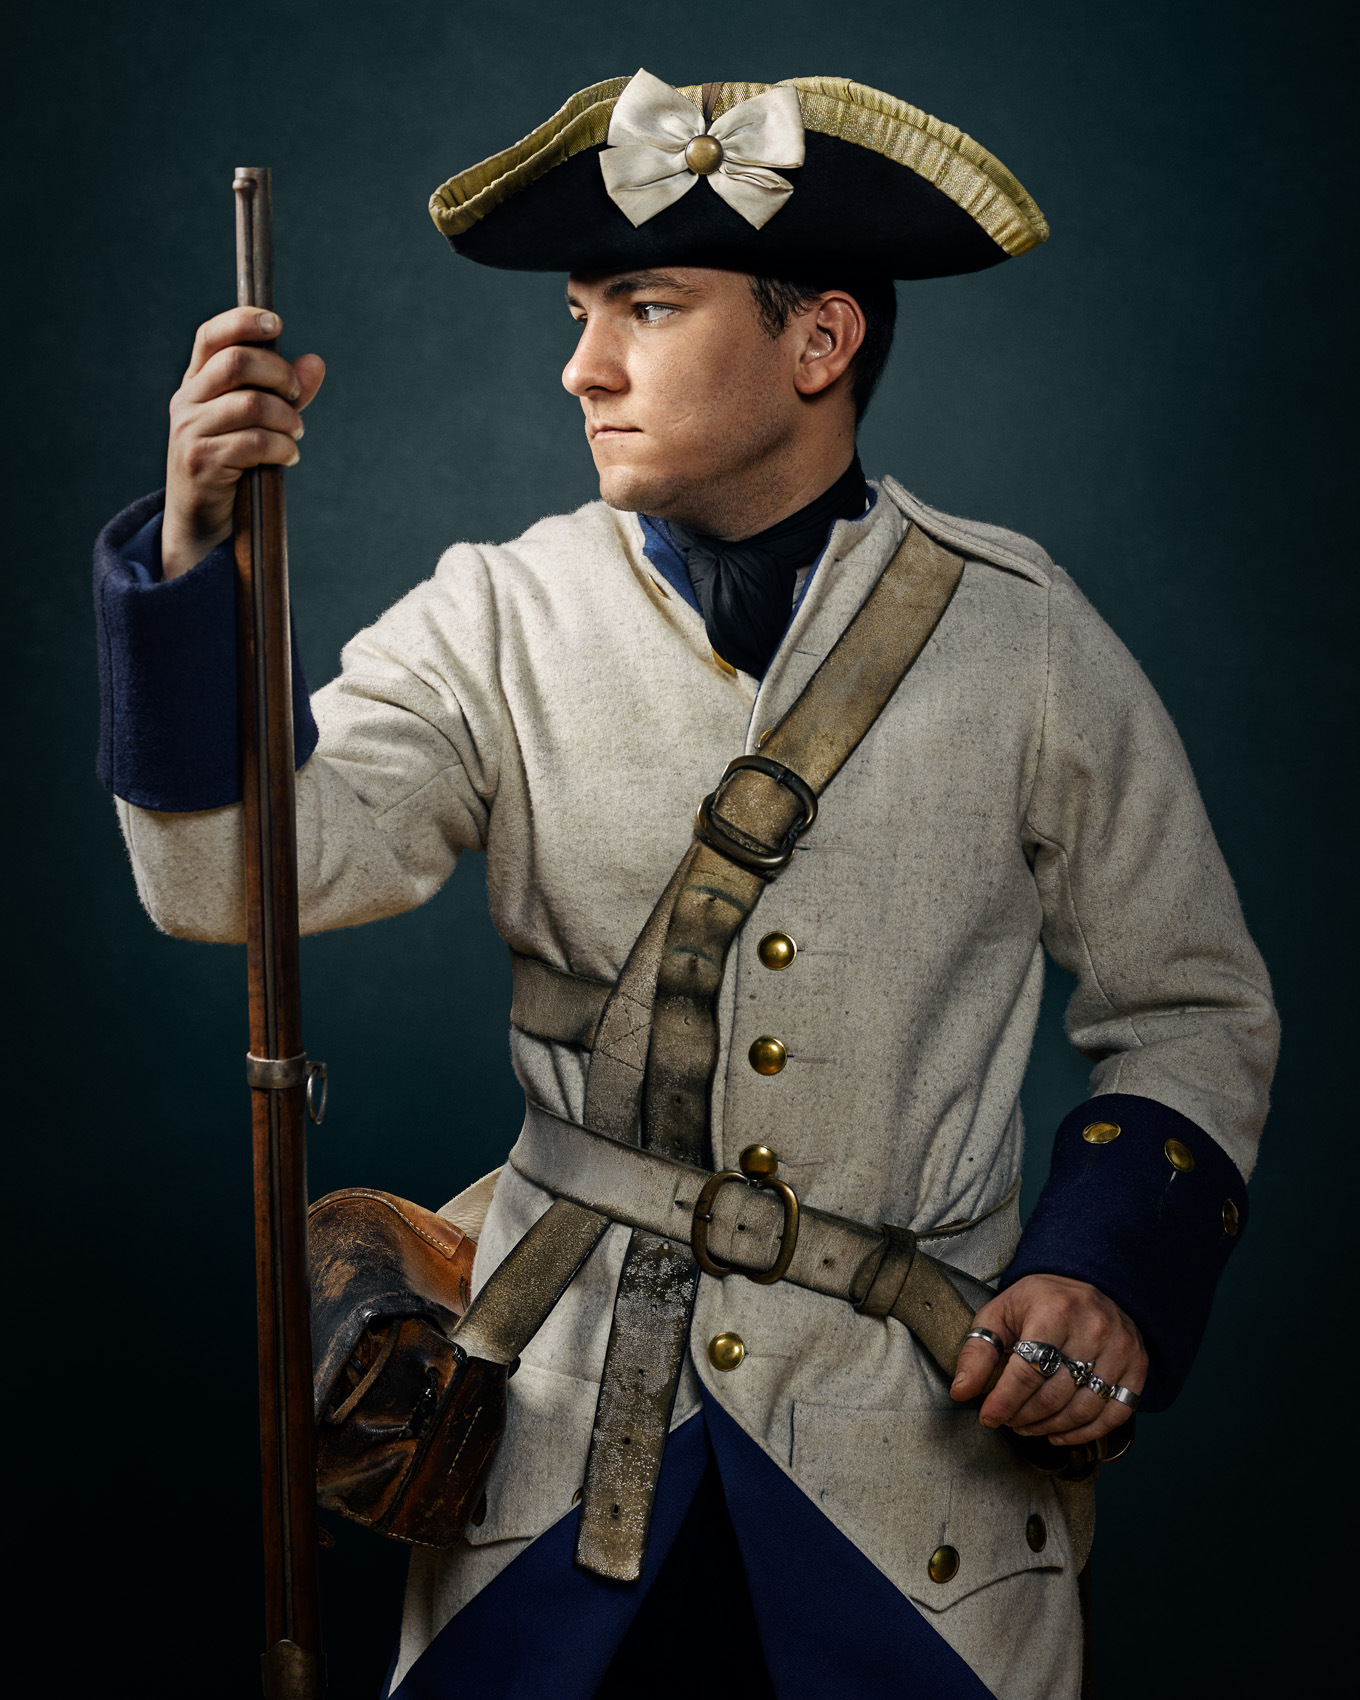 FRENCH AND INDIAN WAR REENACTOR